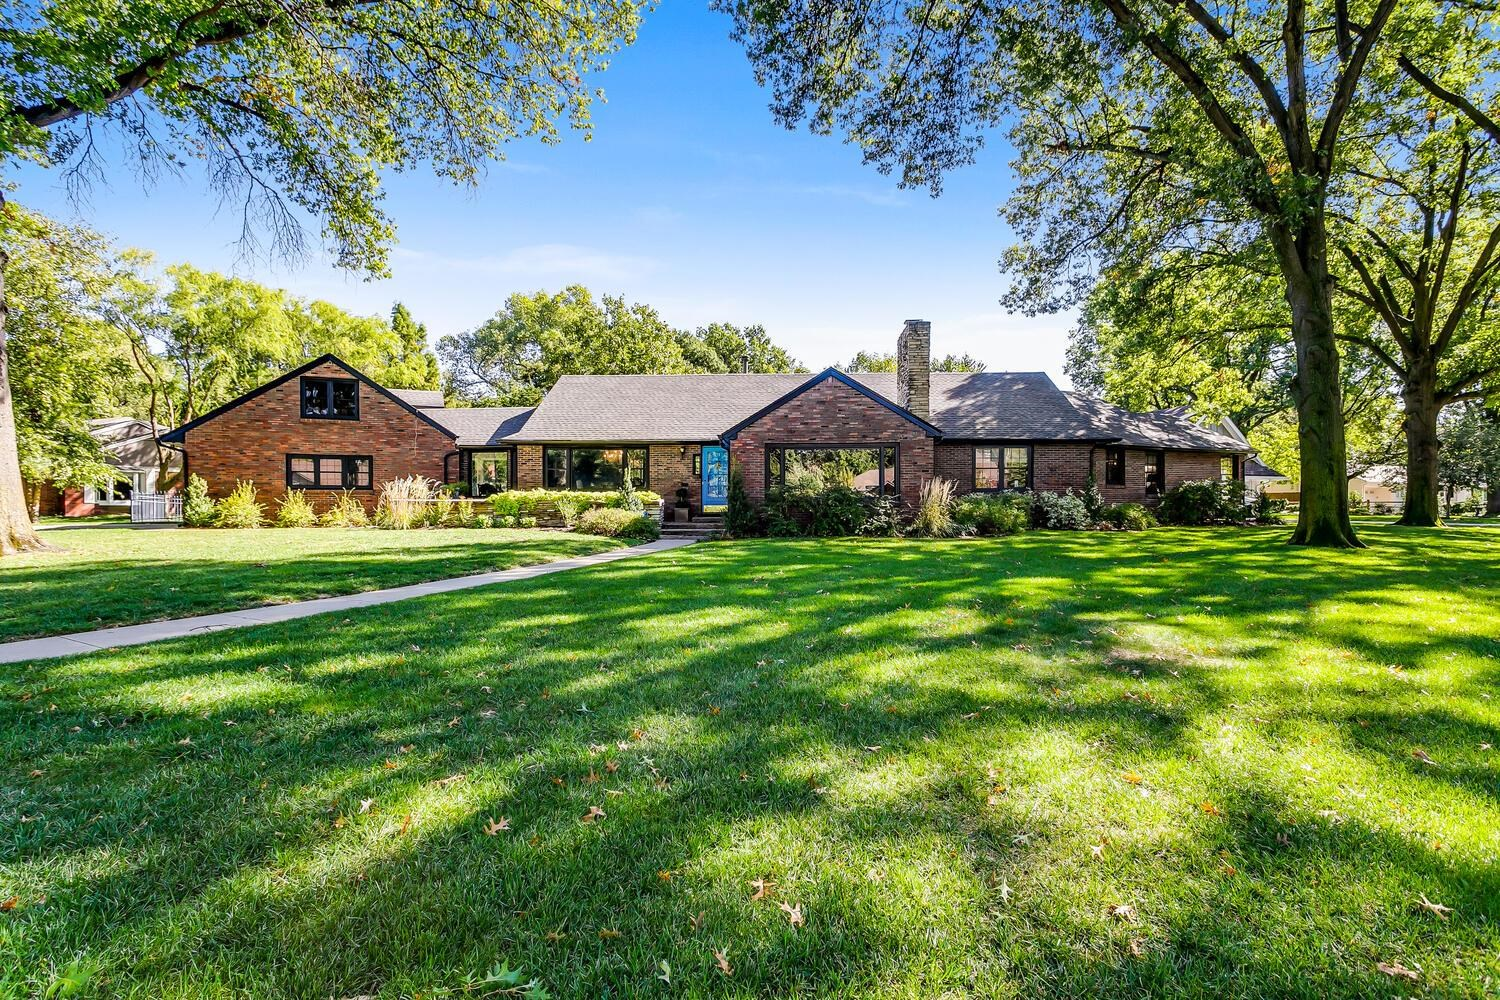 This 4 bedroom, 3.5 bath sprawling ranch home has been carefully remodeled to retain the charm and c